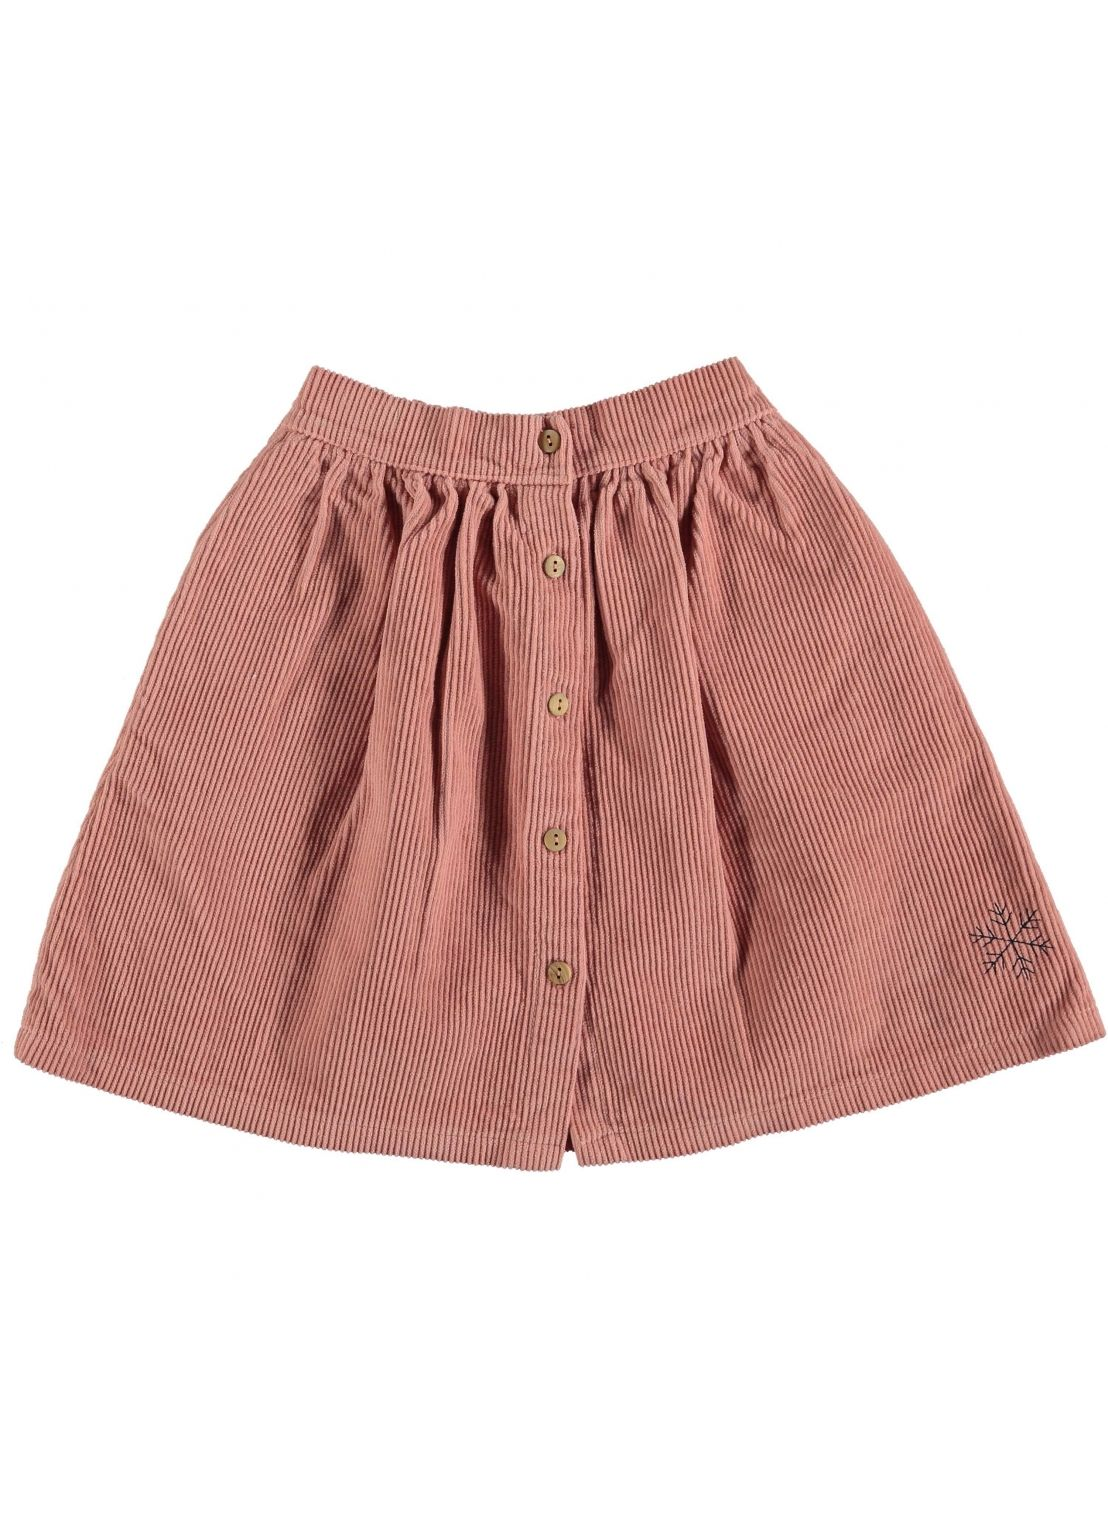 Kid SKIRT Girl-100% Cotton - Knitted